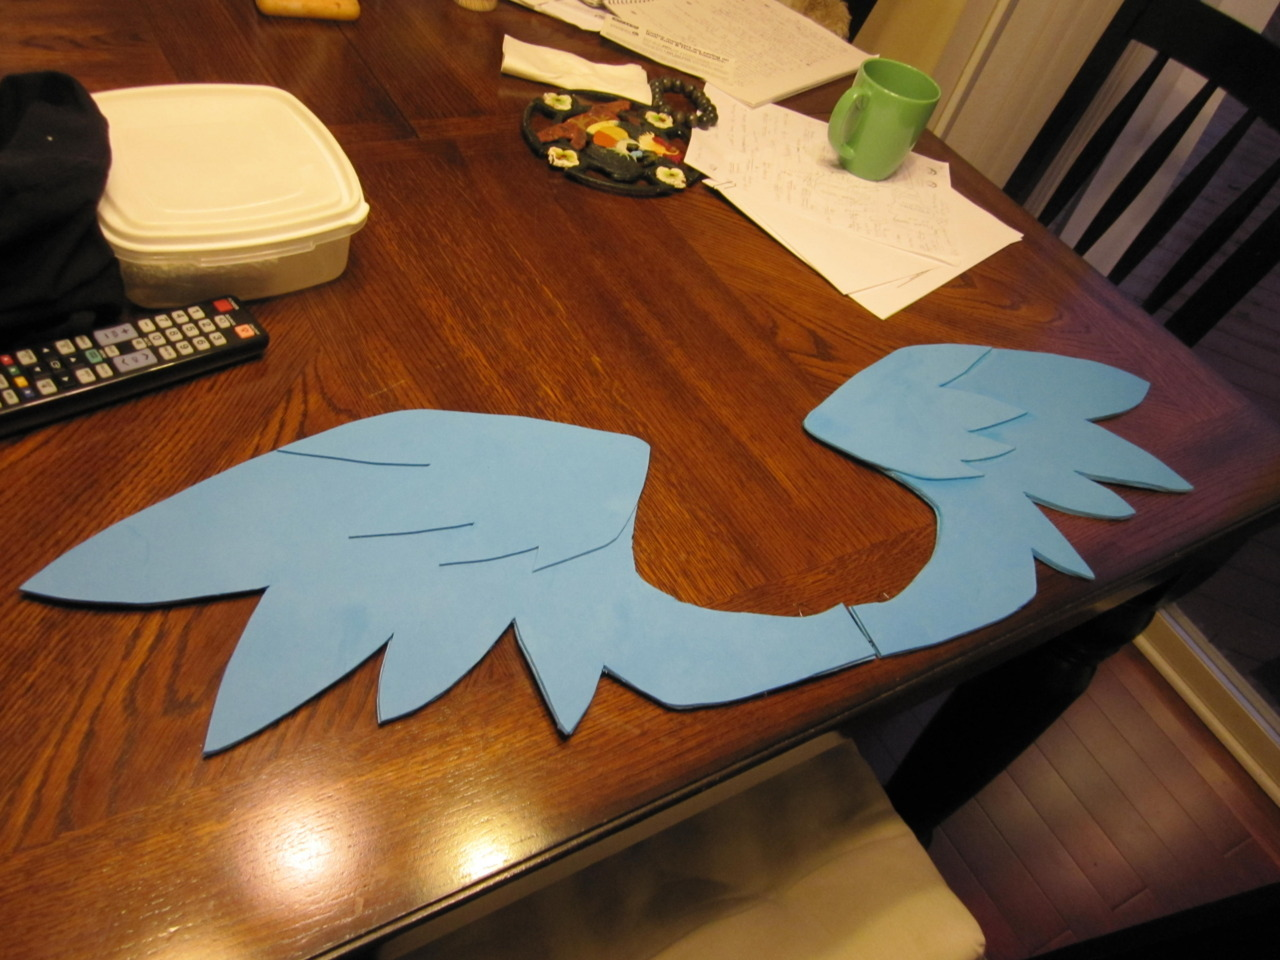 i made pony winnggss today! my first endeavor into making wings pahaha. not finished obviously but getting there. rainbow dash for tobie, then gonna work on fluttershy for megan tomorroowwww :3